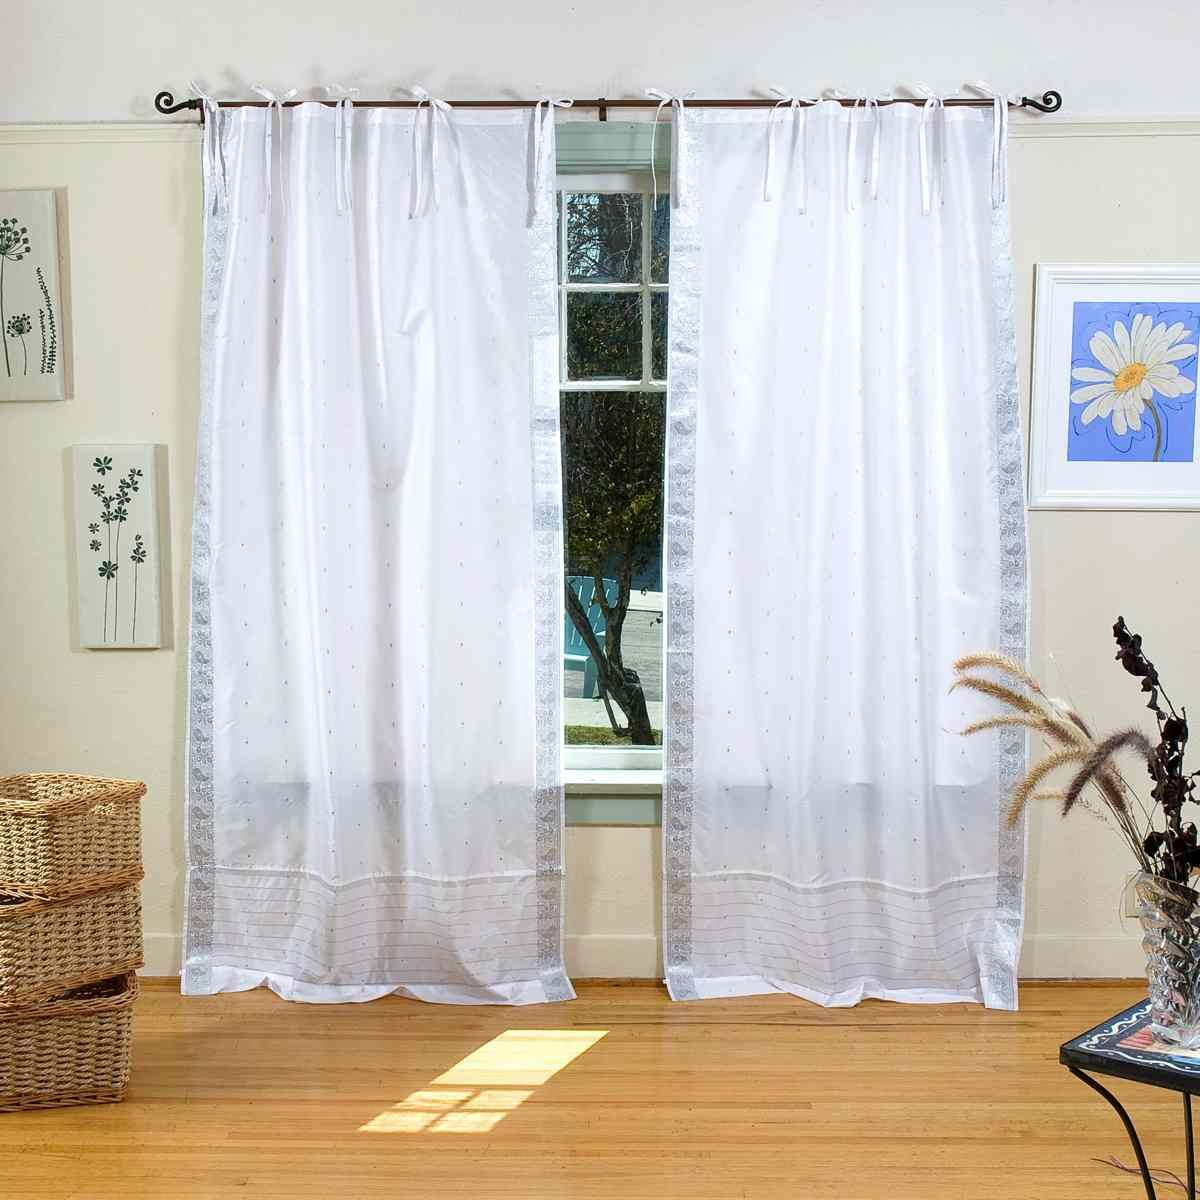 ready indian made showroom manufacturers treatment at room cotton india suppliers curtains living bohemian beautiful drapes alibaba in com and